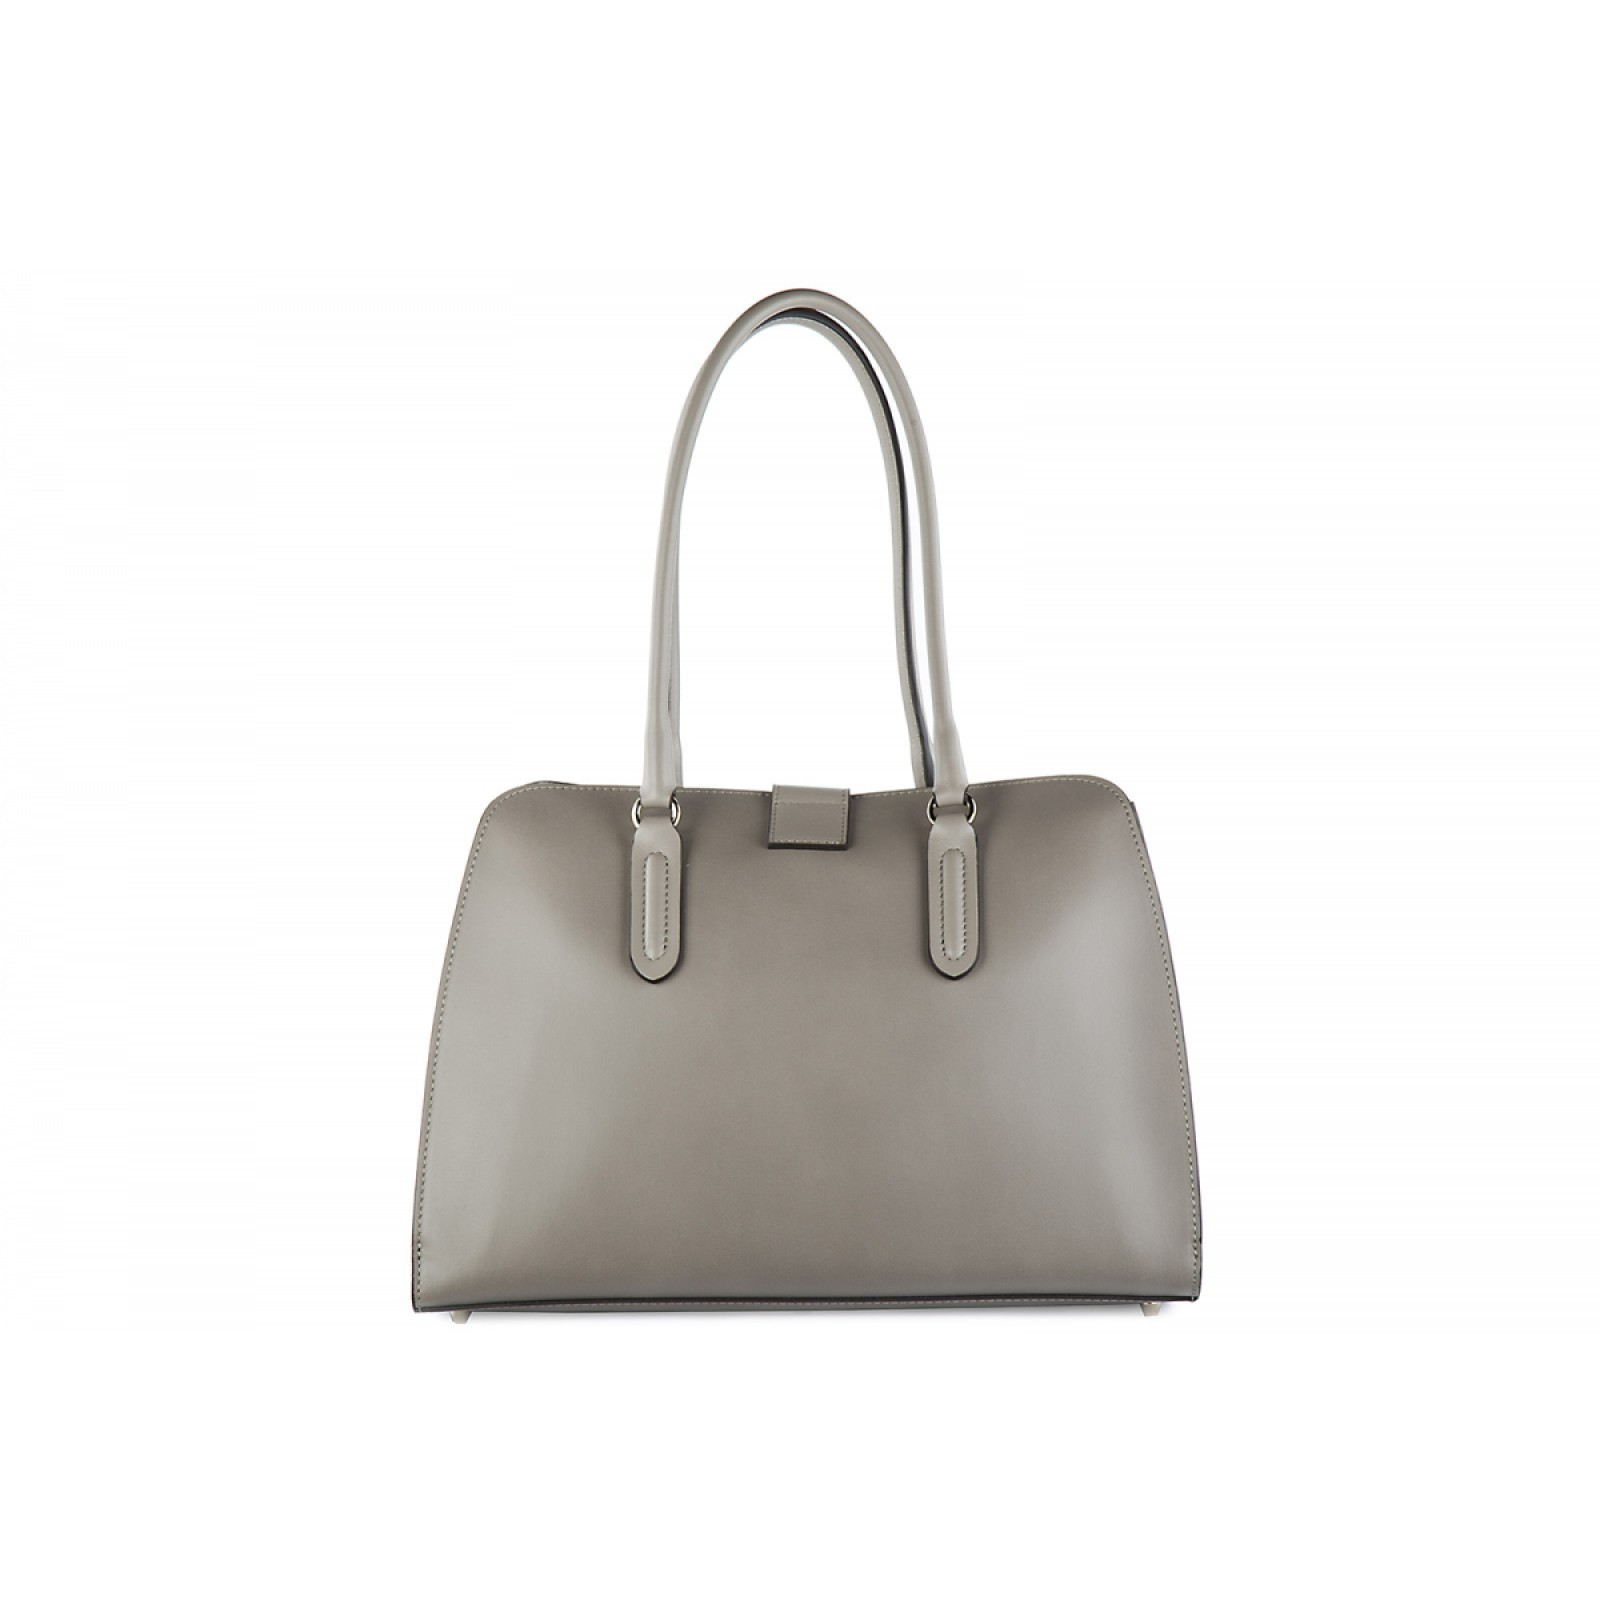 送料込 Borsa donna a mano shopping in pelle milano バッグ